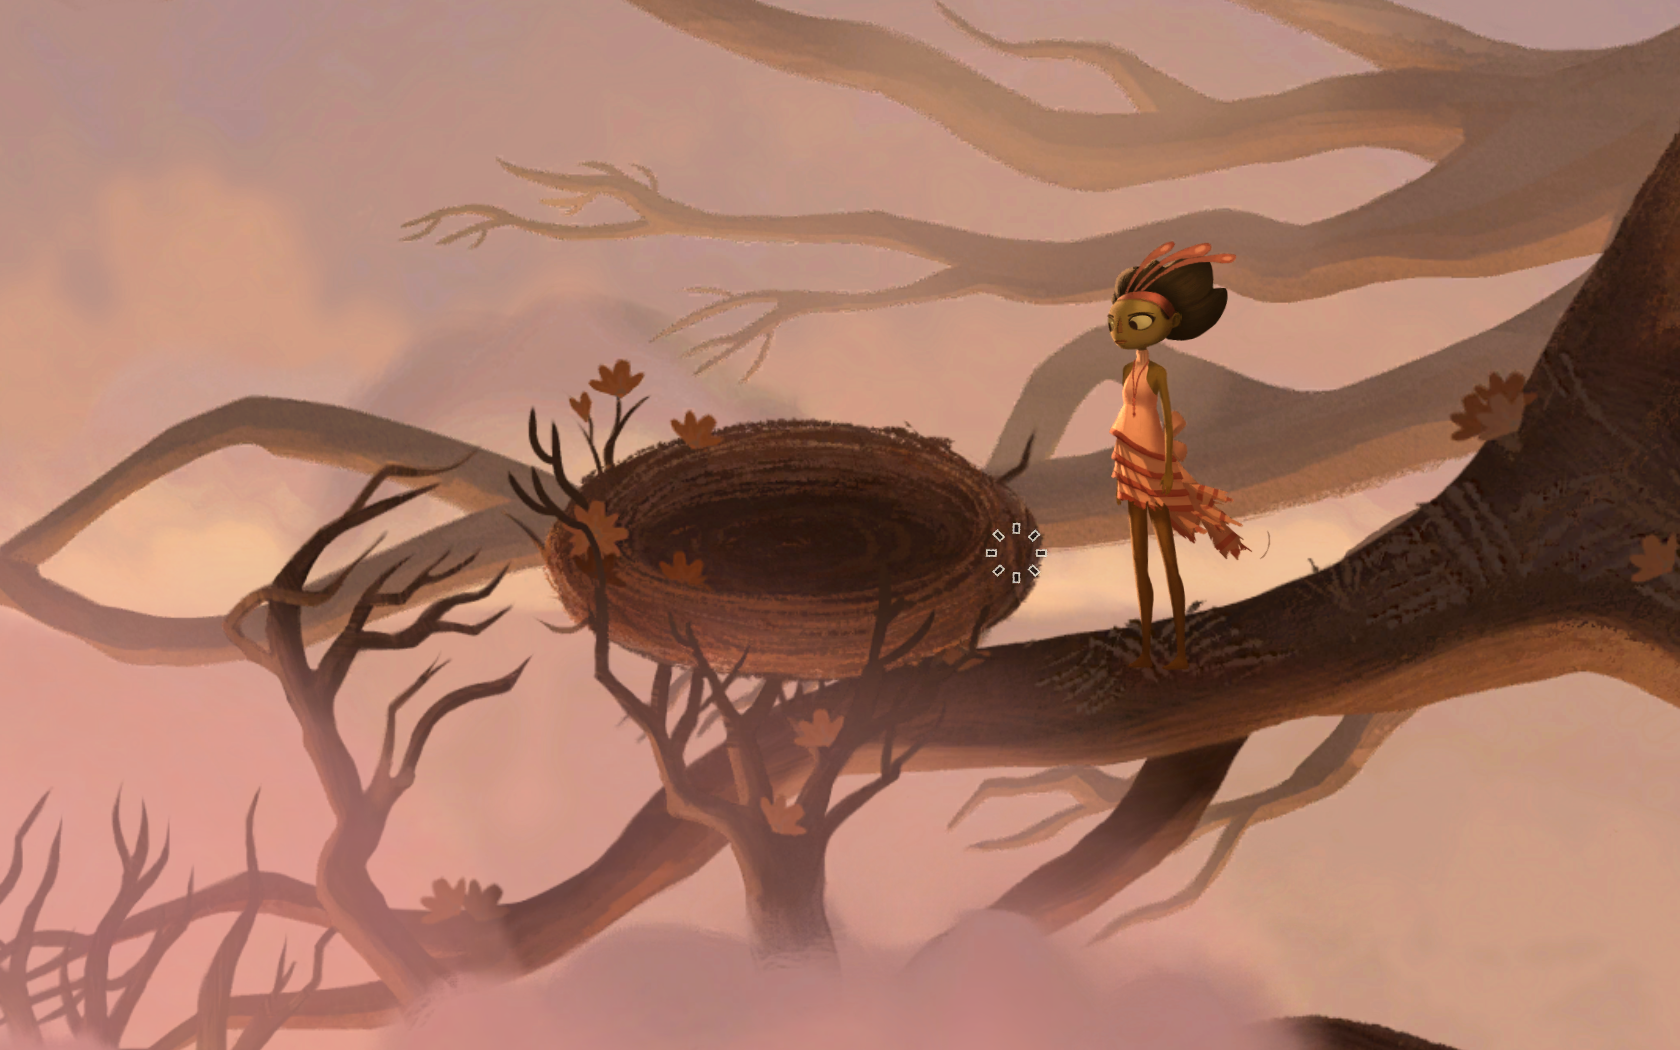 Broken Age part 1 launches Jan. 14 for backers only (update)